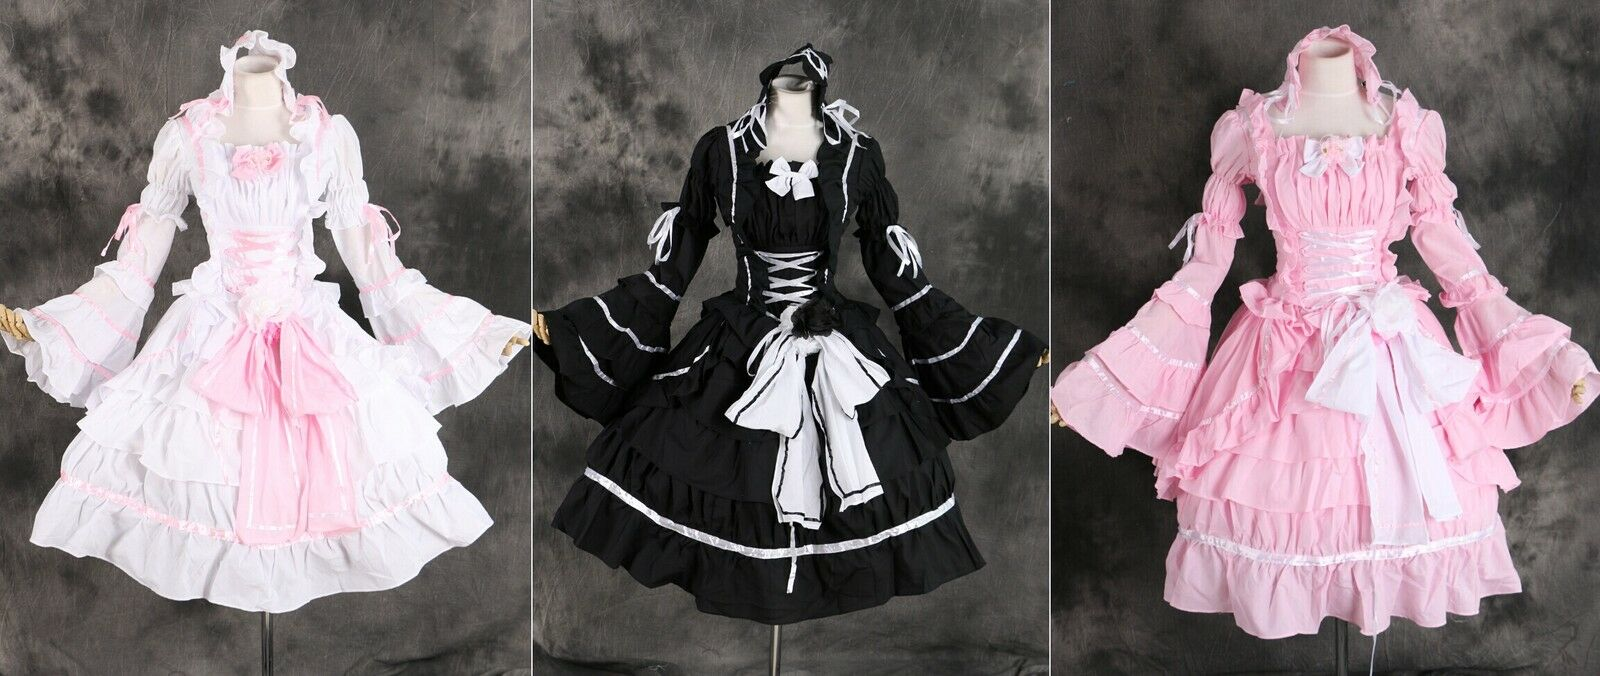 M-3109 Gothic Classic Lolita Sleeves Removeable Cosplay Costume Dress